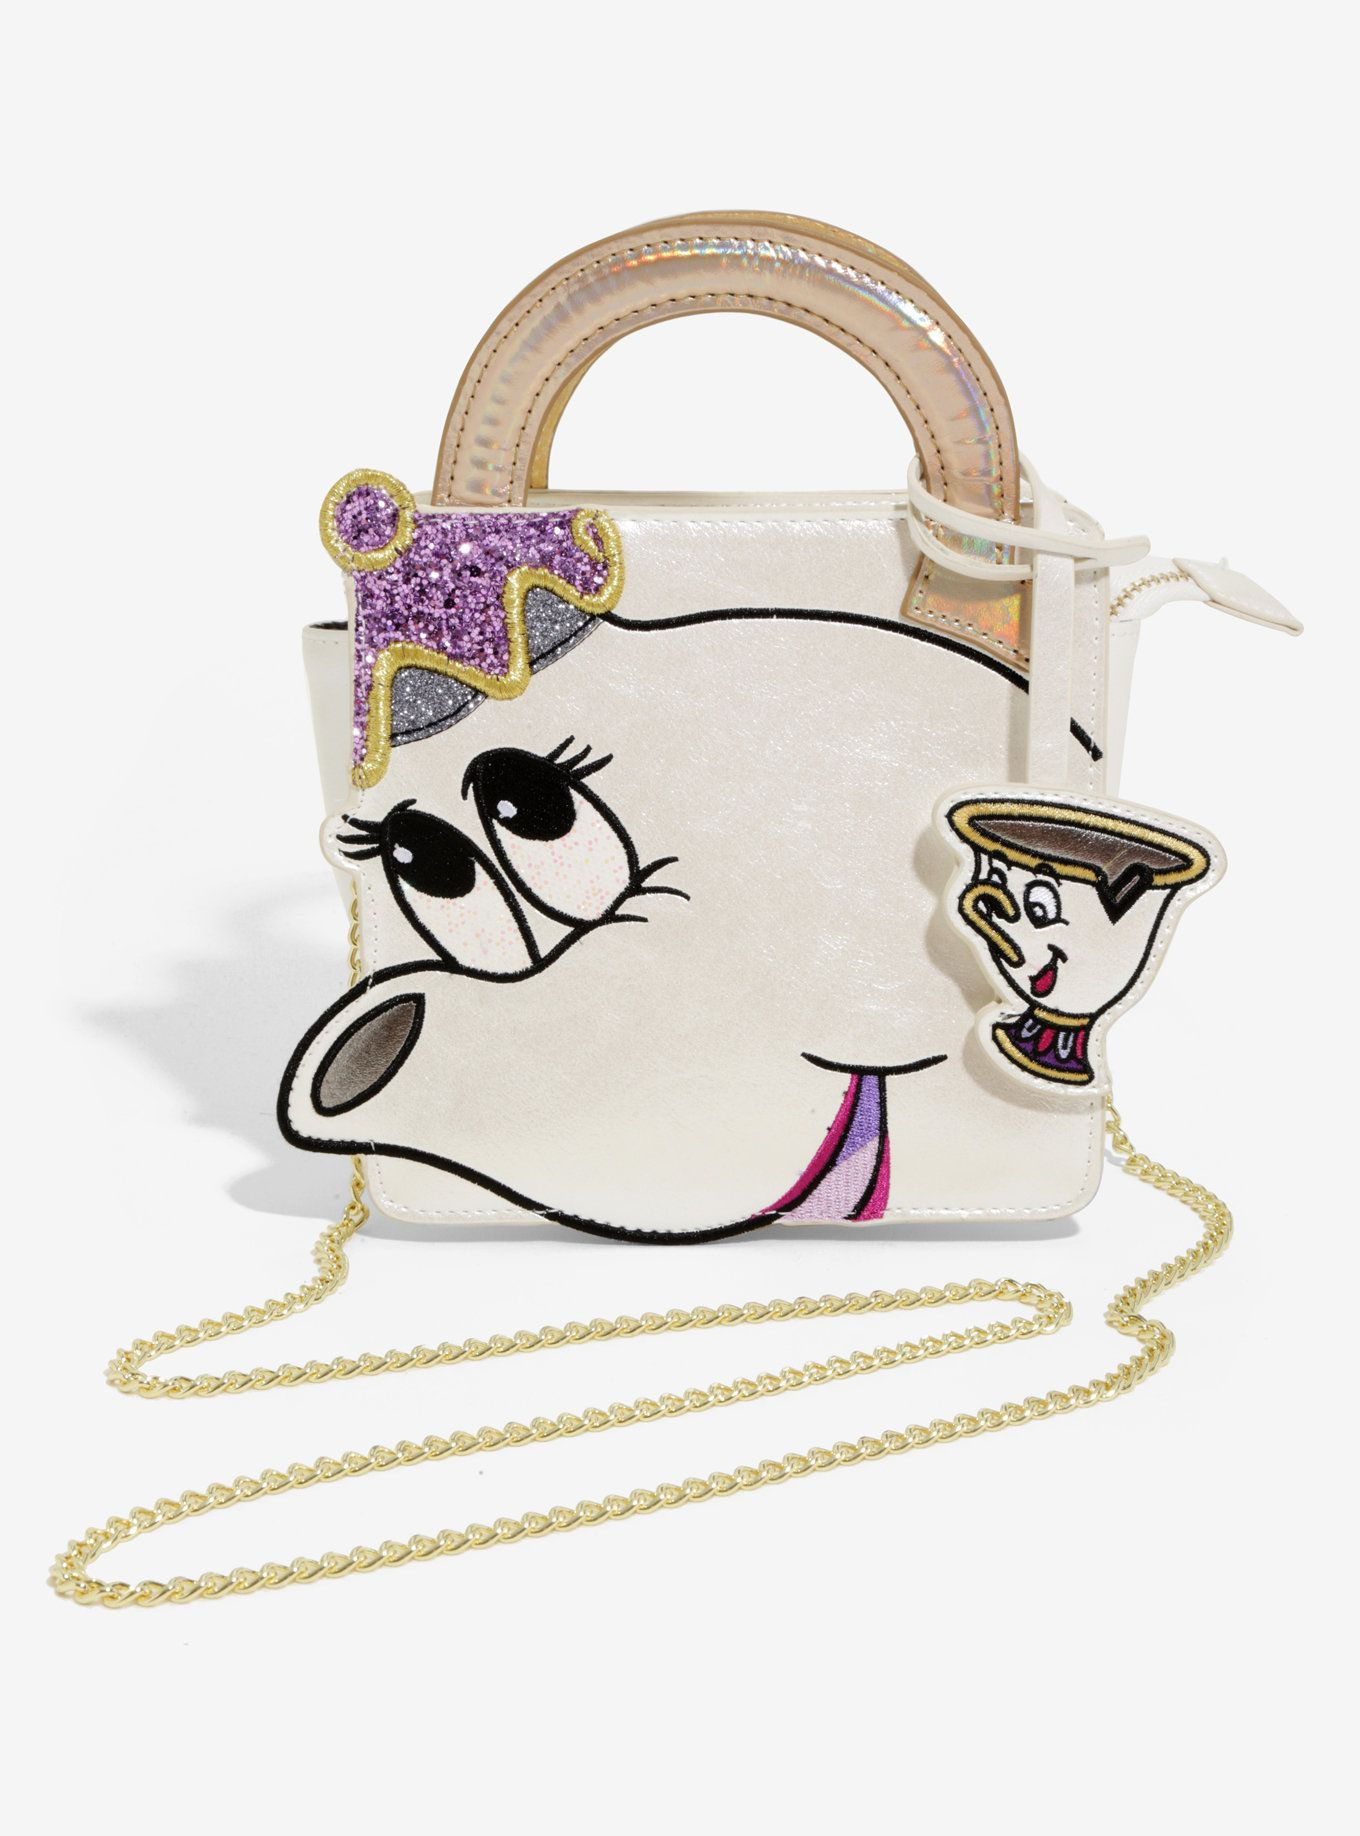 564021fa5 Danielle Nicole's collaboration with Disney brings your favorite characters  to life in an unexpected way! And on this handbag, Mrs. Potts and Chip from  ...